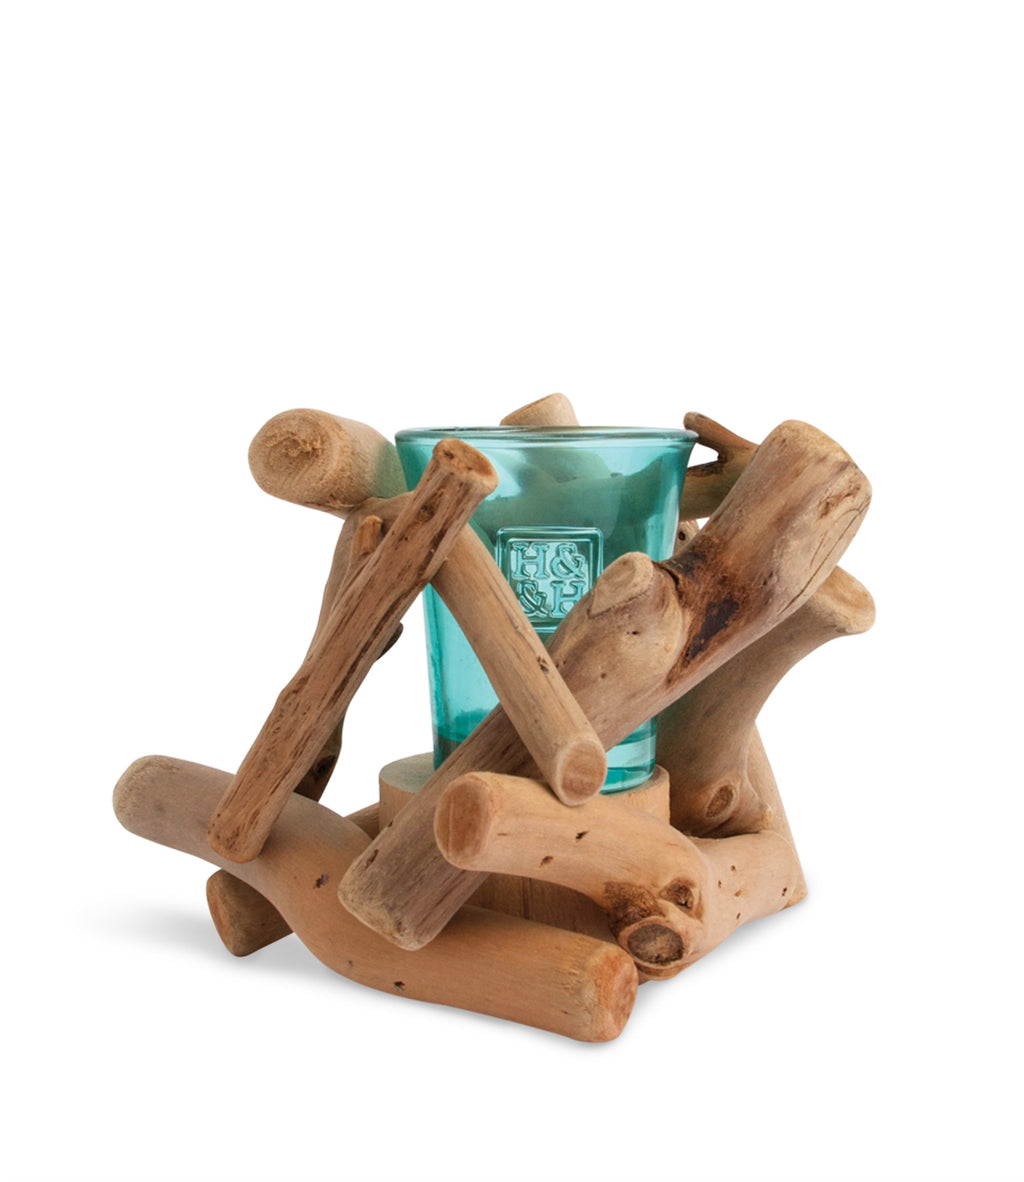 Driftwood Fire Candle Holder - From Heart and Home